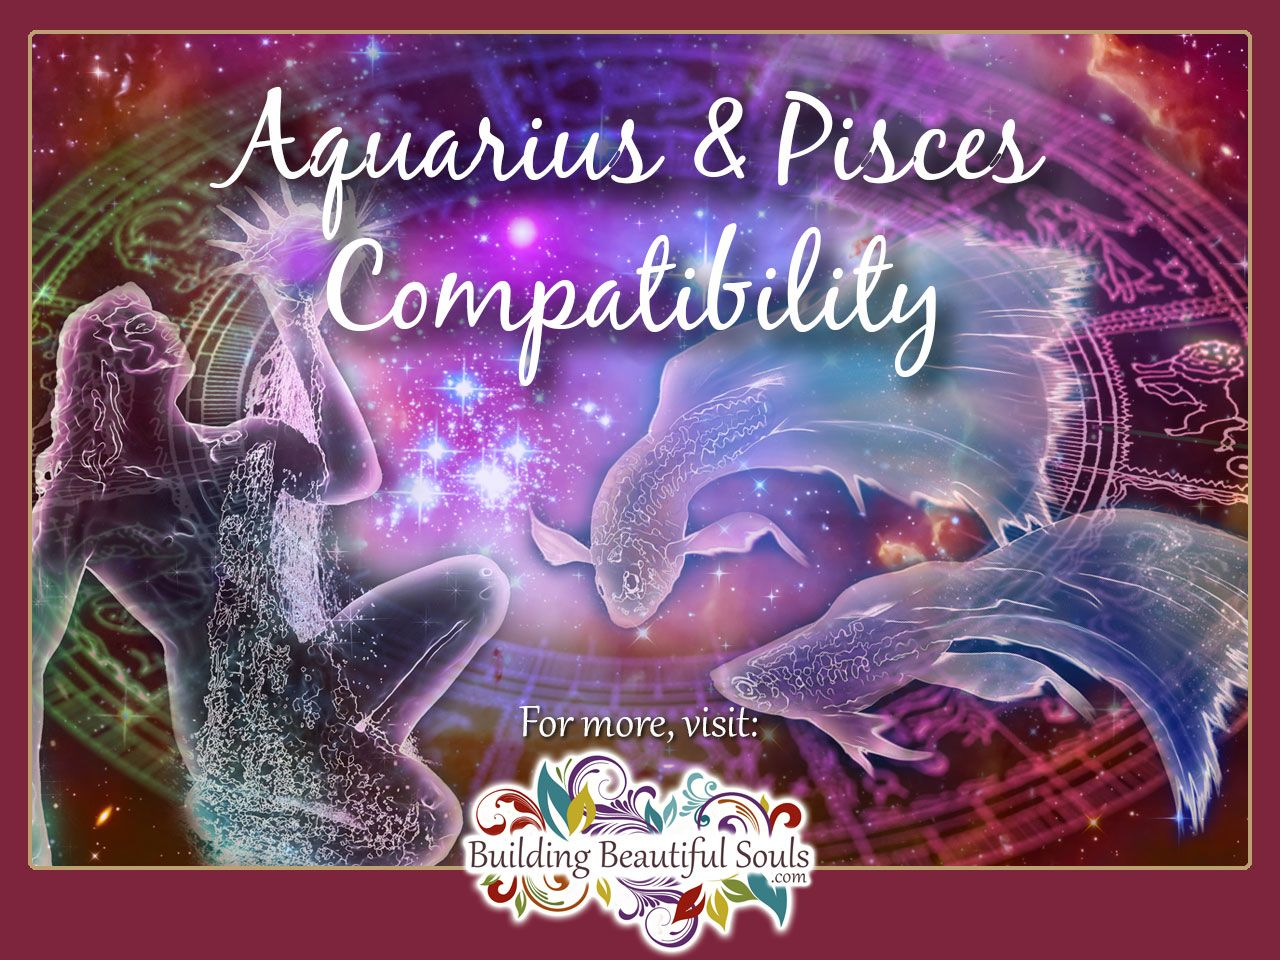 Aquarius and Pisces 1280 x 960